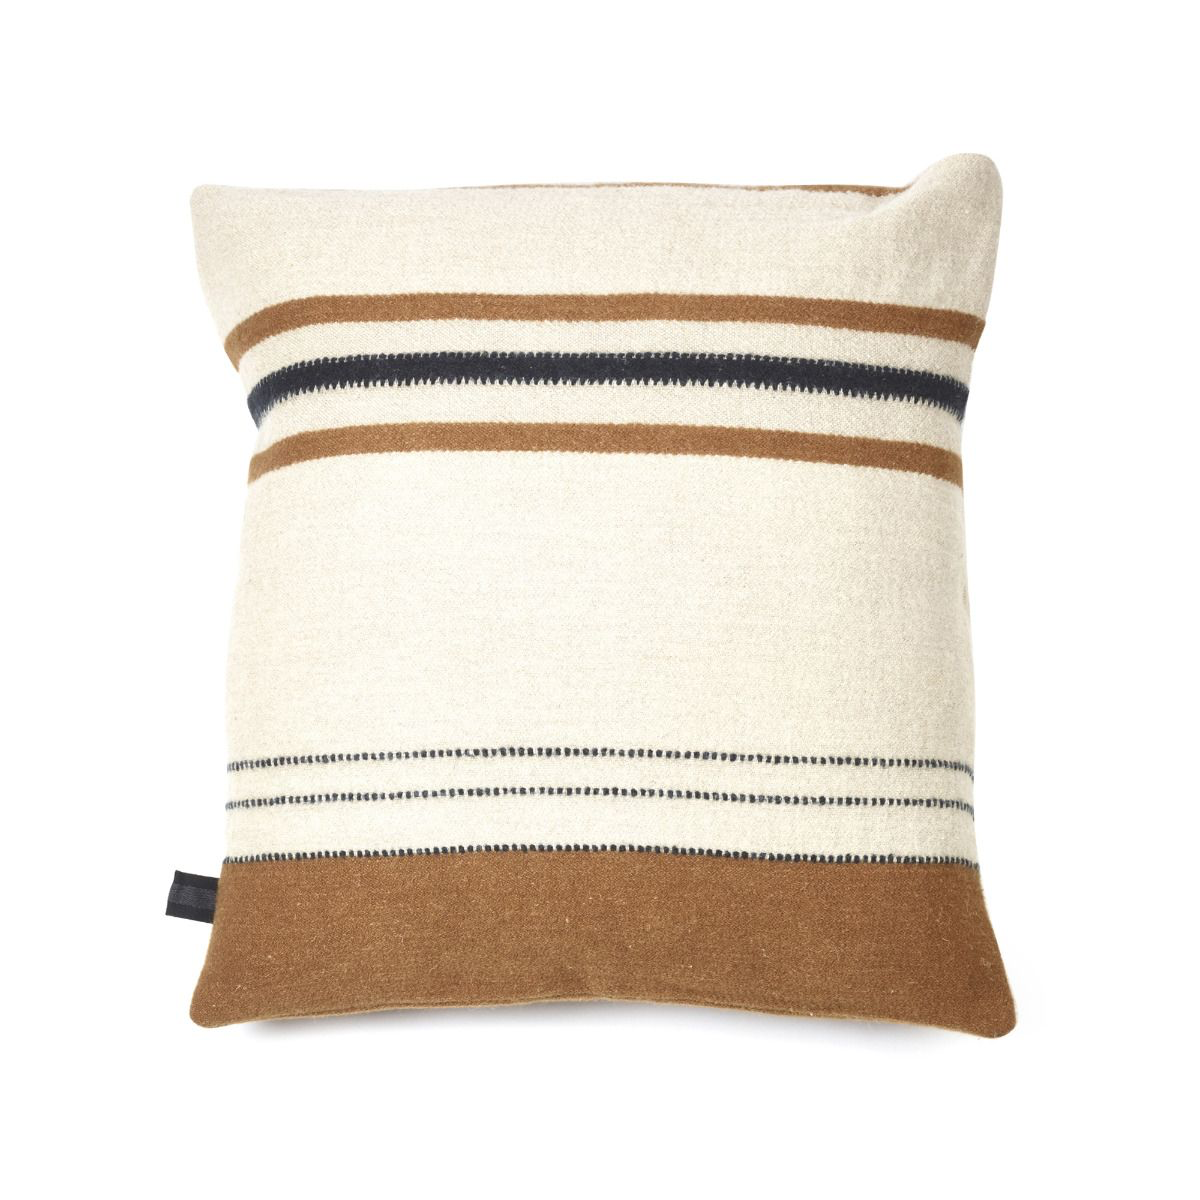 foundry pillow cover, libeco, accessories | pillows and cushions, - adorn.house